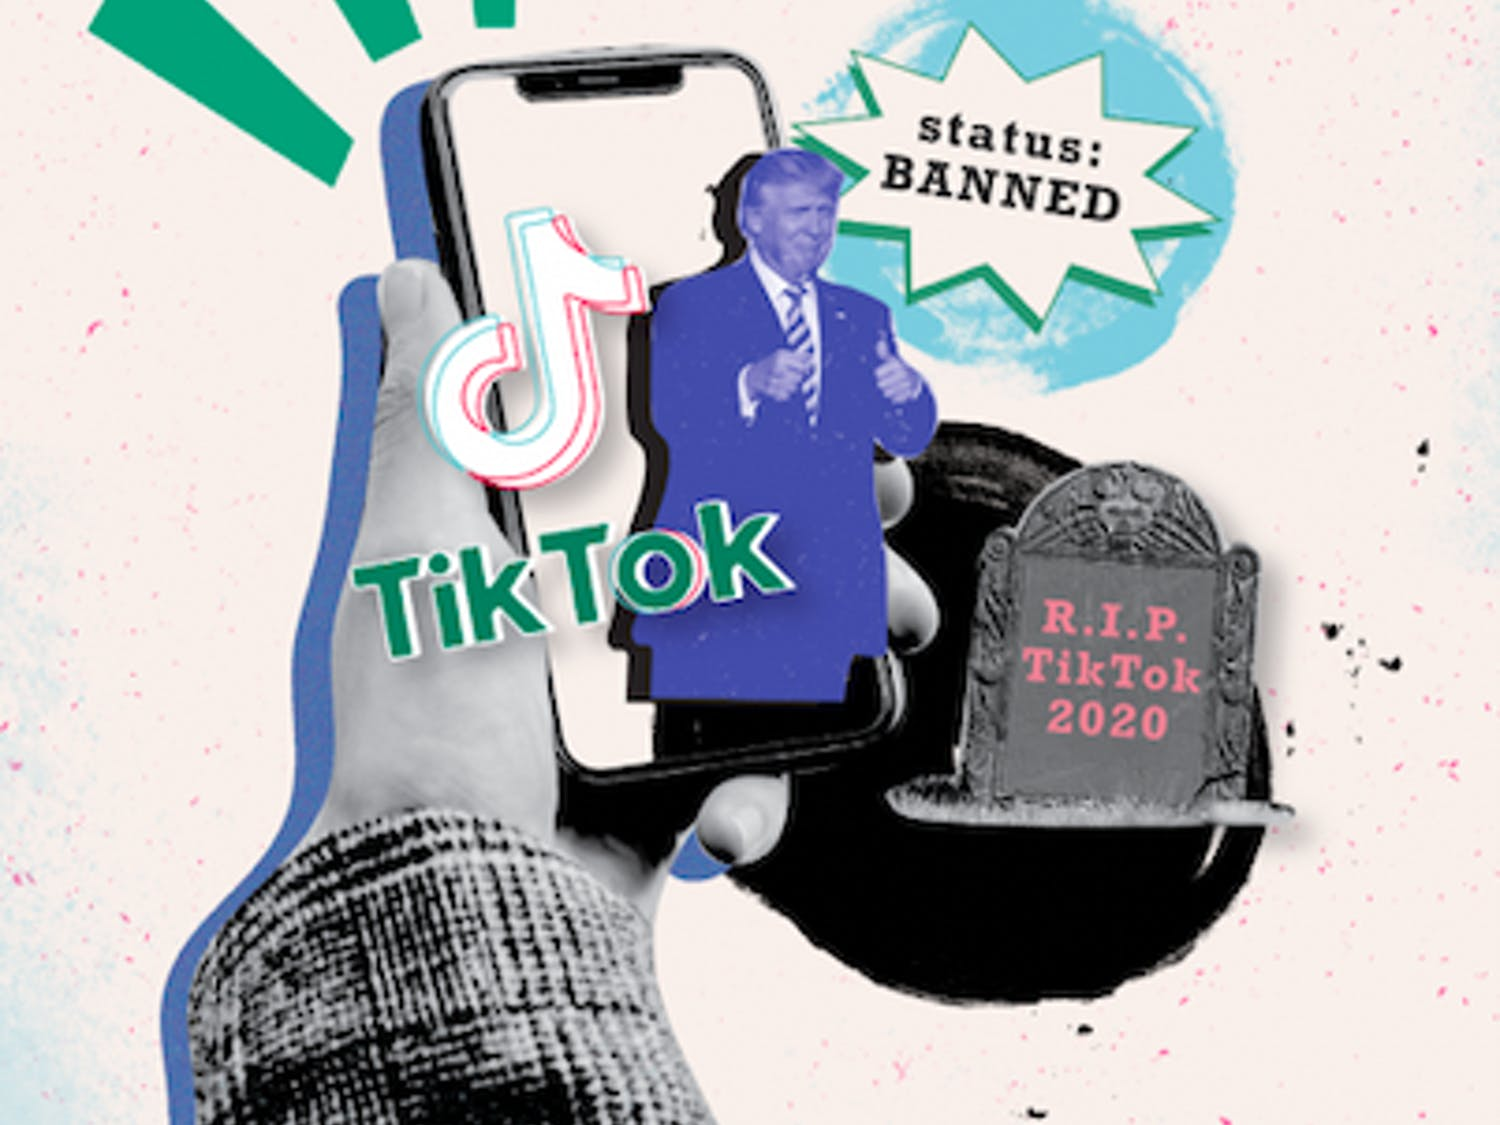 On Friday, President Trump told reporters he plans to ban TikTok, and chaos shortly followed within the TikTok community.